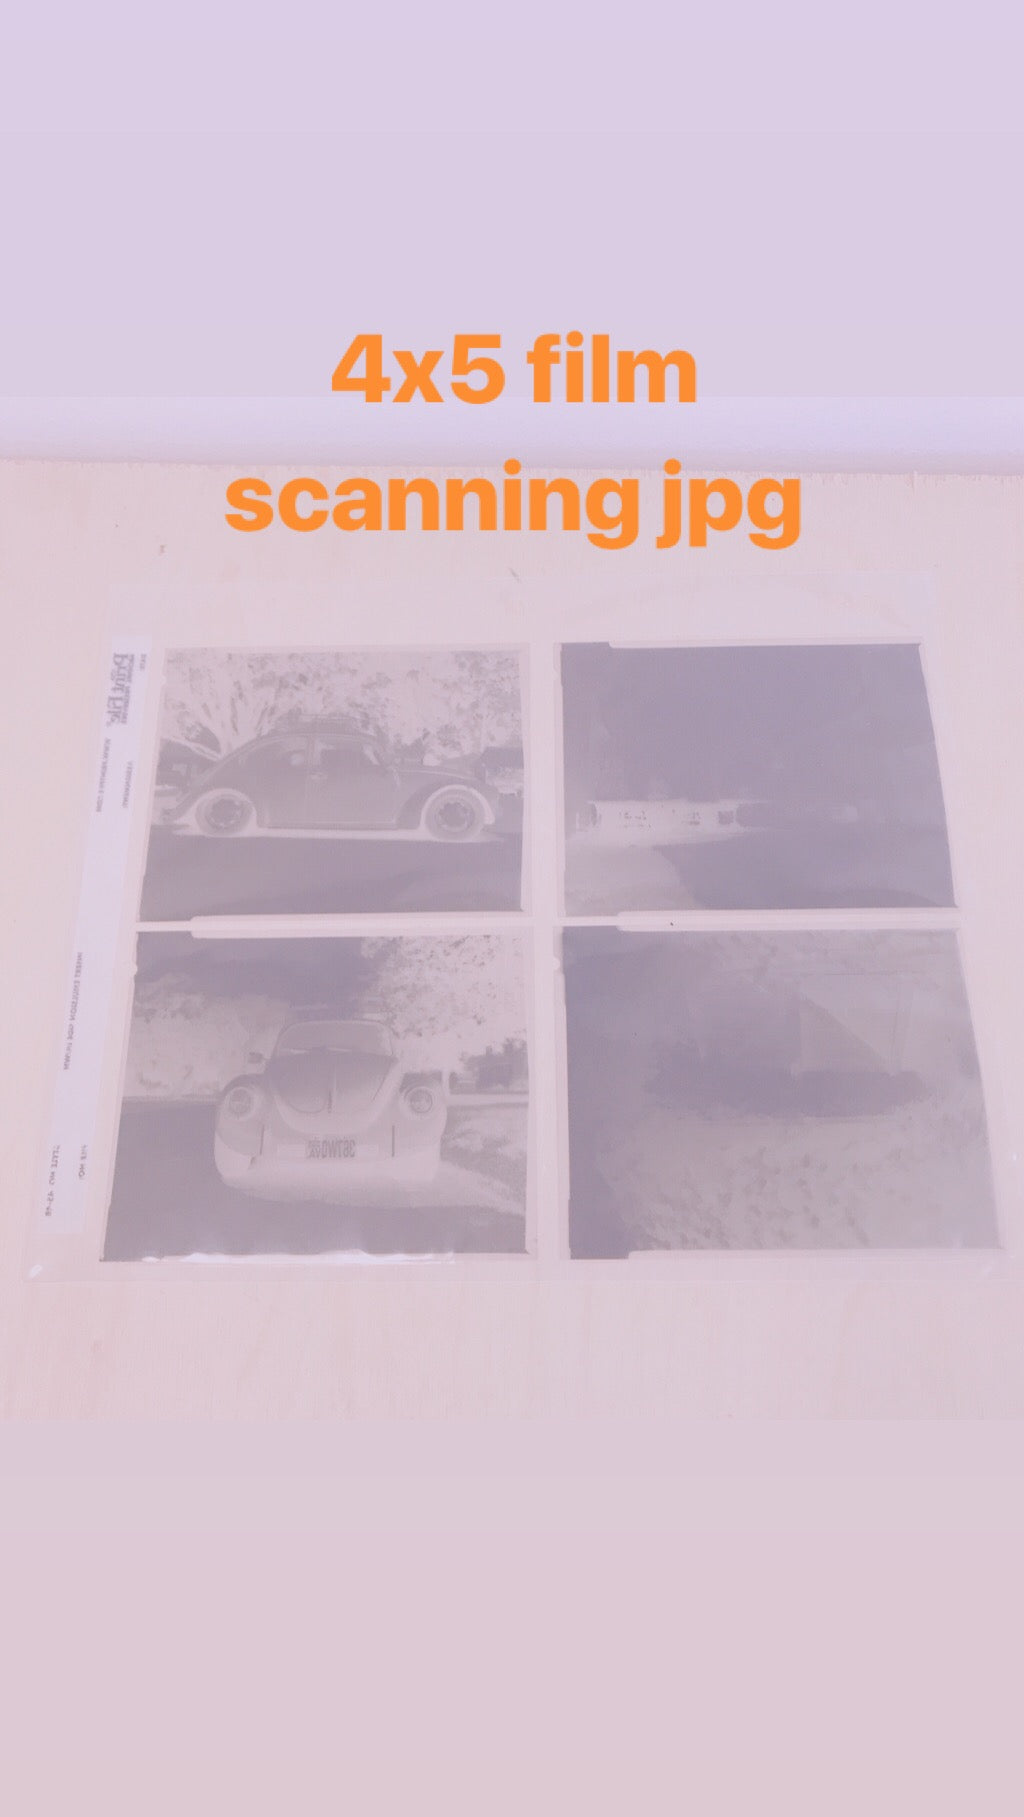 4x5 film Scanning per sheet Jpg